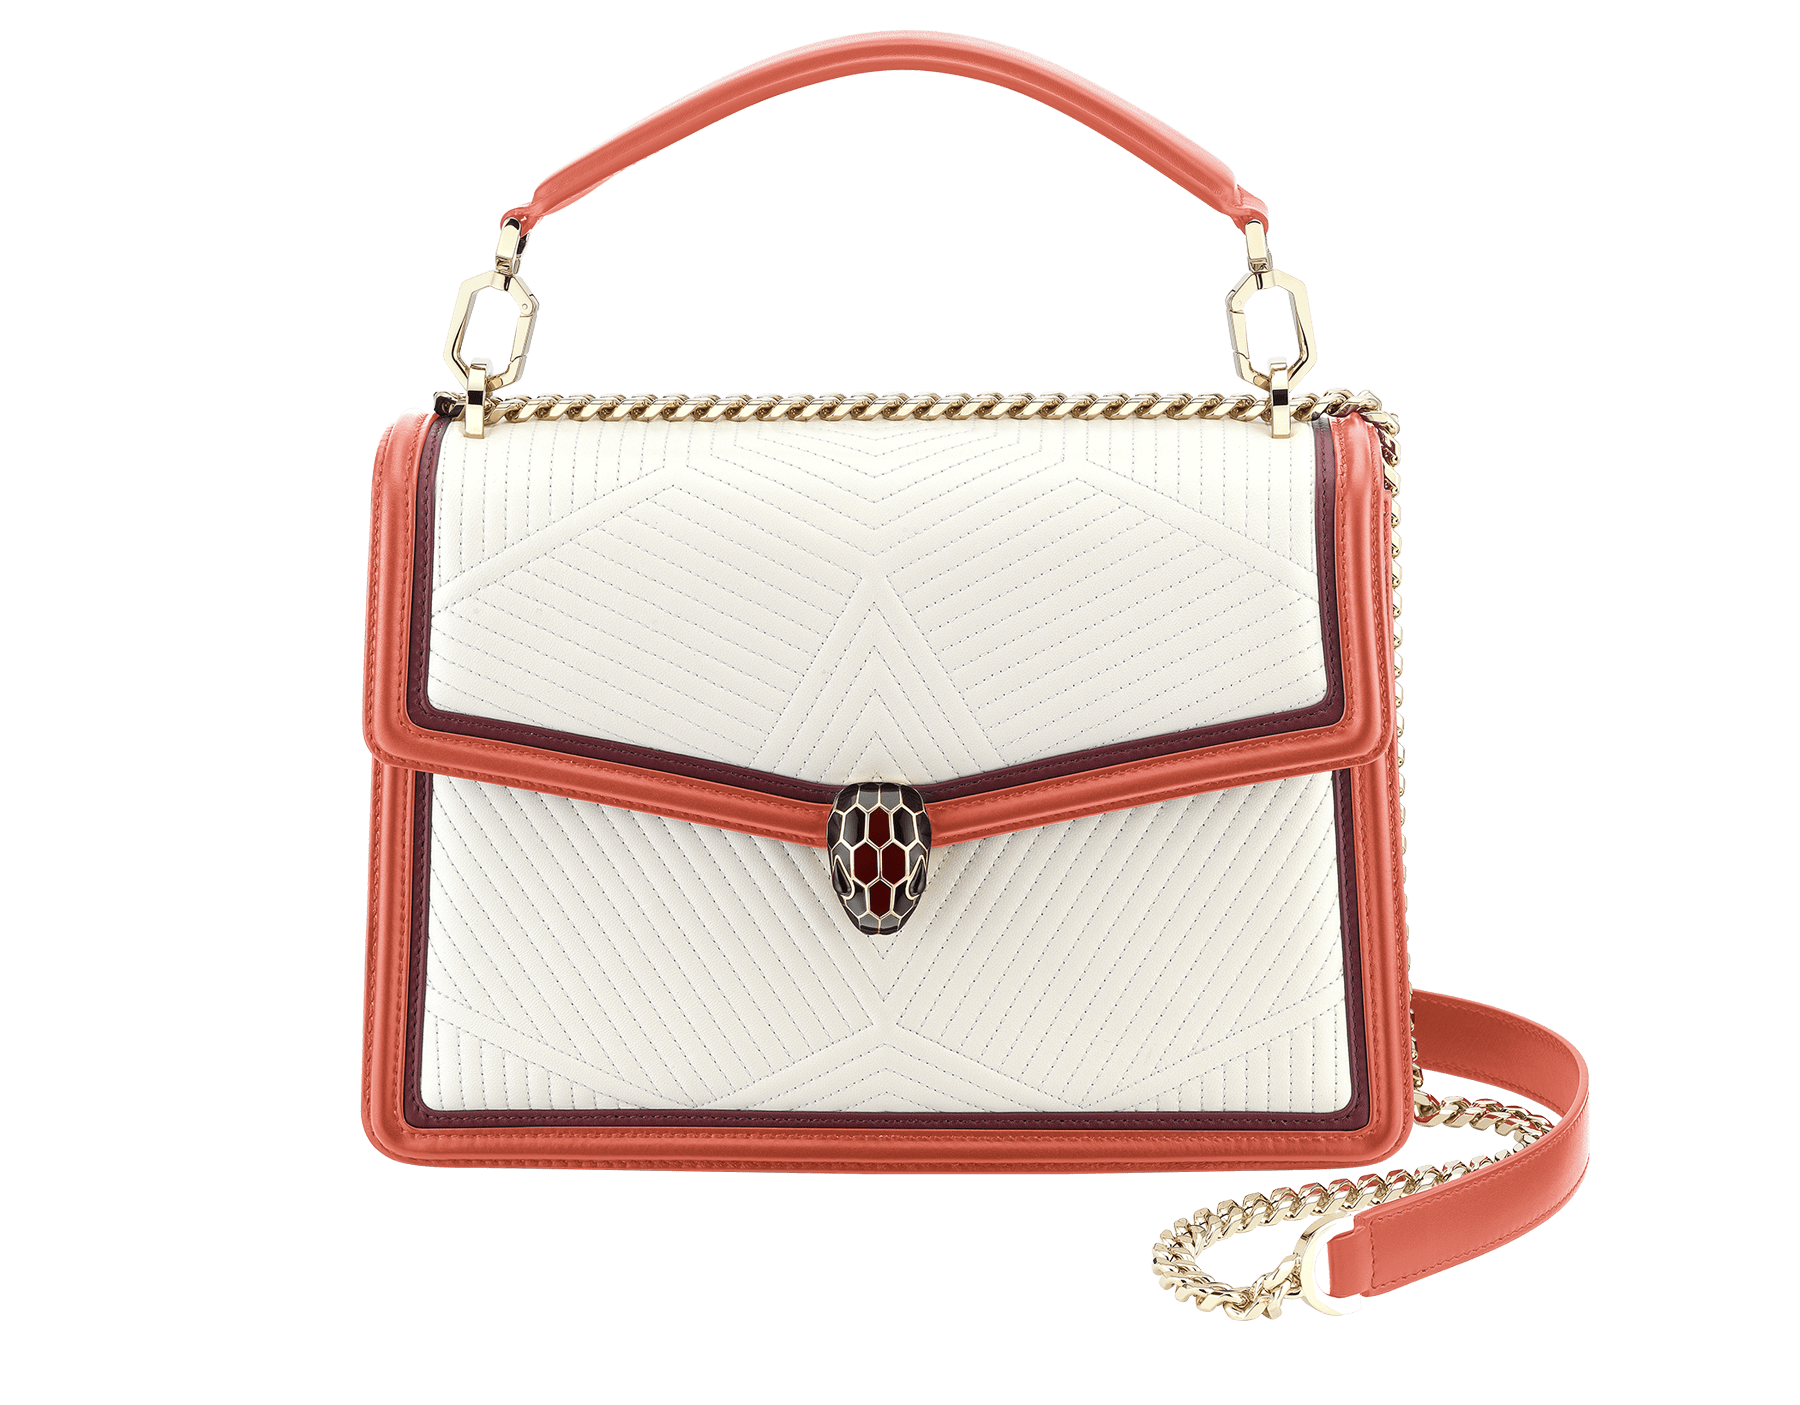 Serpenti Diamond Blast shoulder bag in white agate quilted nappa leather and imperial topaz with Roman garnet calf leather frames. Iconic snakehead closure in light gold plated brass embellished with Roman garnet and black enamel and black onyx eyes. 288840 image 2